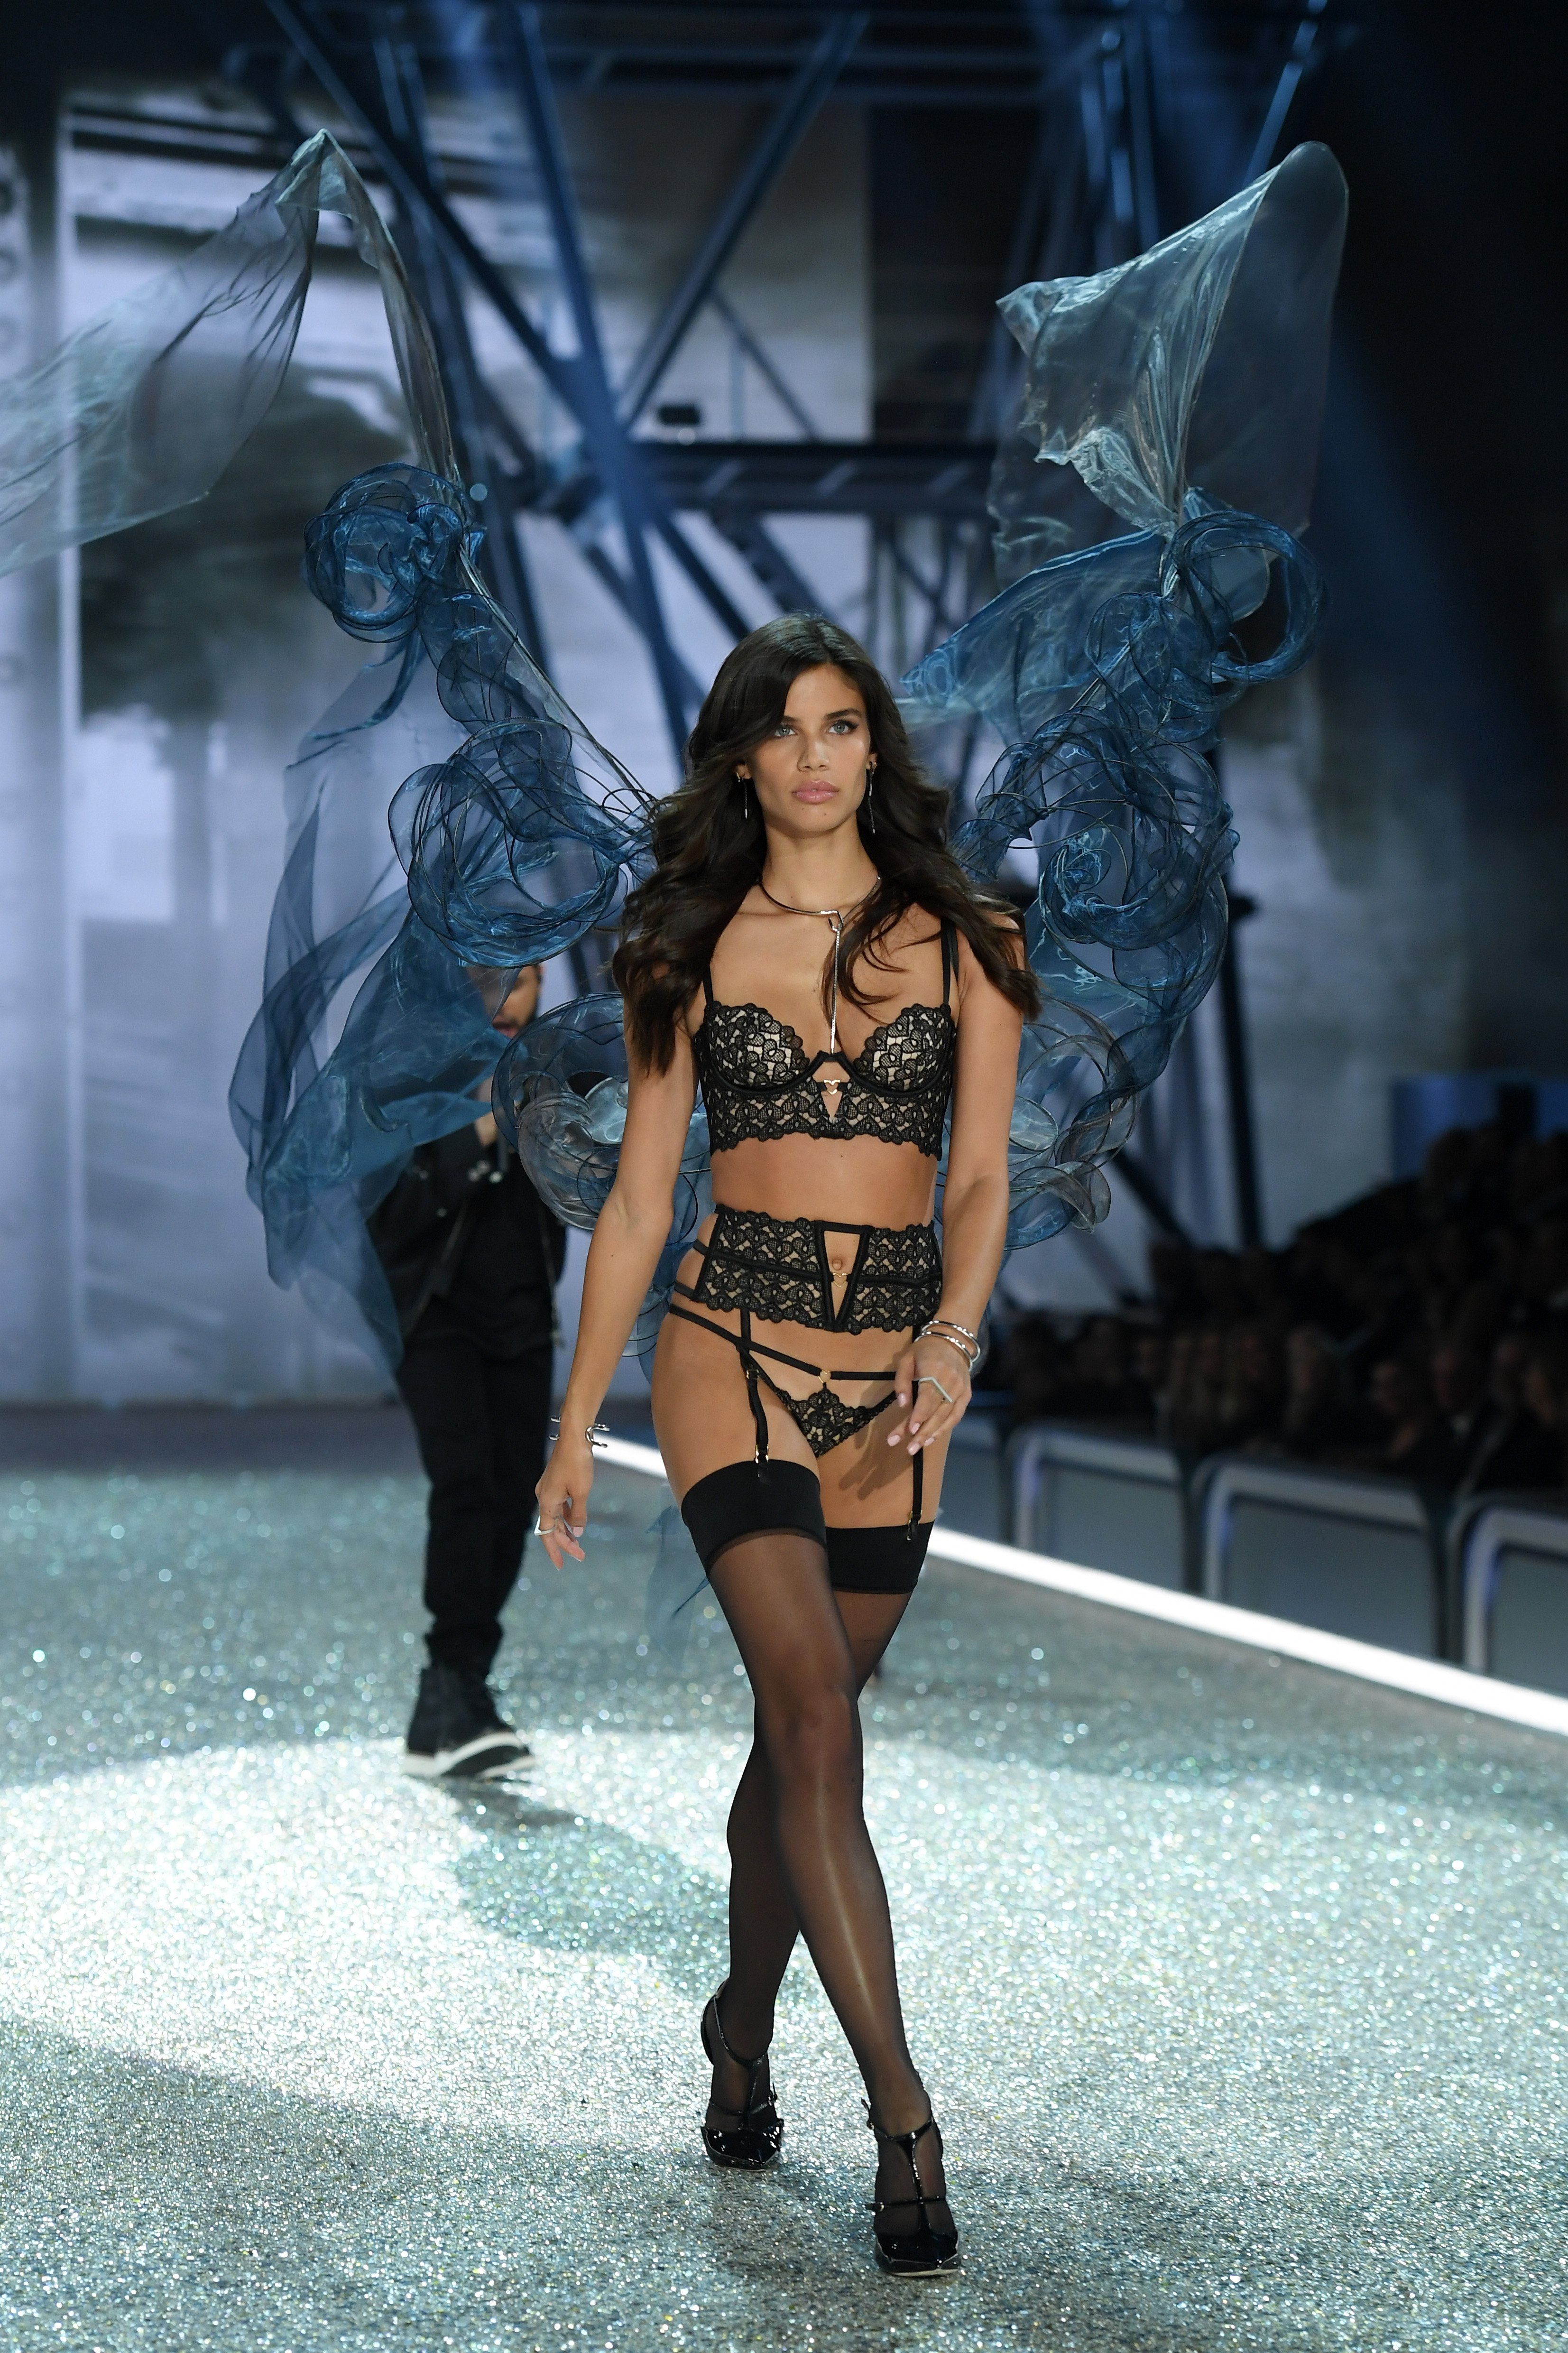 PARIS, FRANCE - NOVEMBER 30: Sara Sampaio walks the runway during the 2016 Victoria's Secret Fashion Show on November 30, 2016 in Paris, France. (Photo by Dimitrios Kambouris/Getty Images for Victoria's Secret)